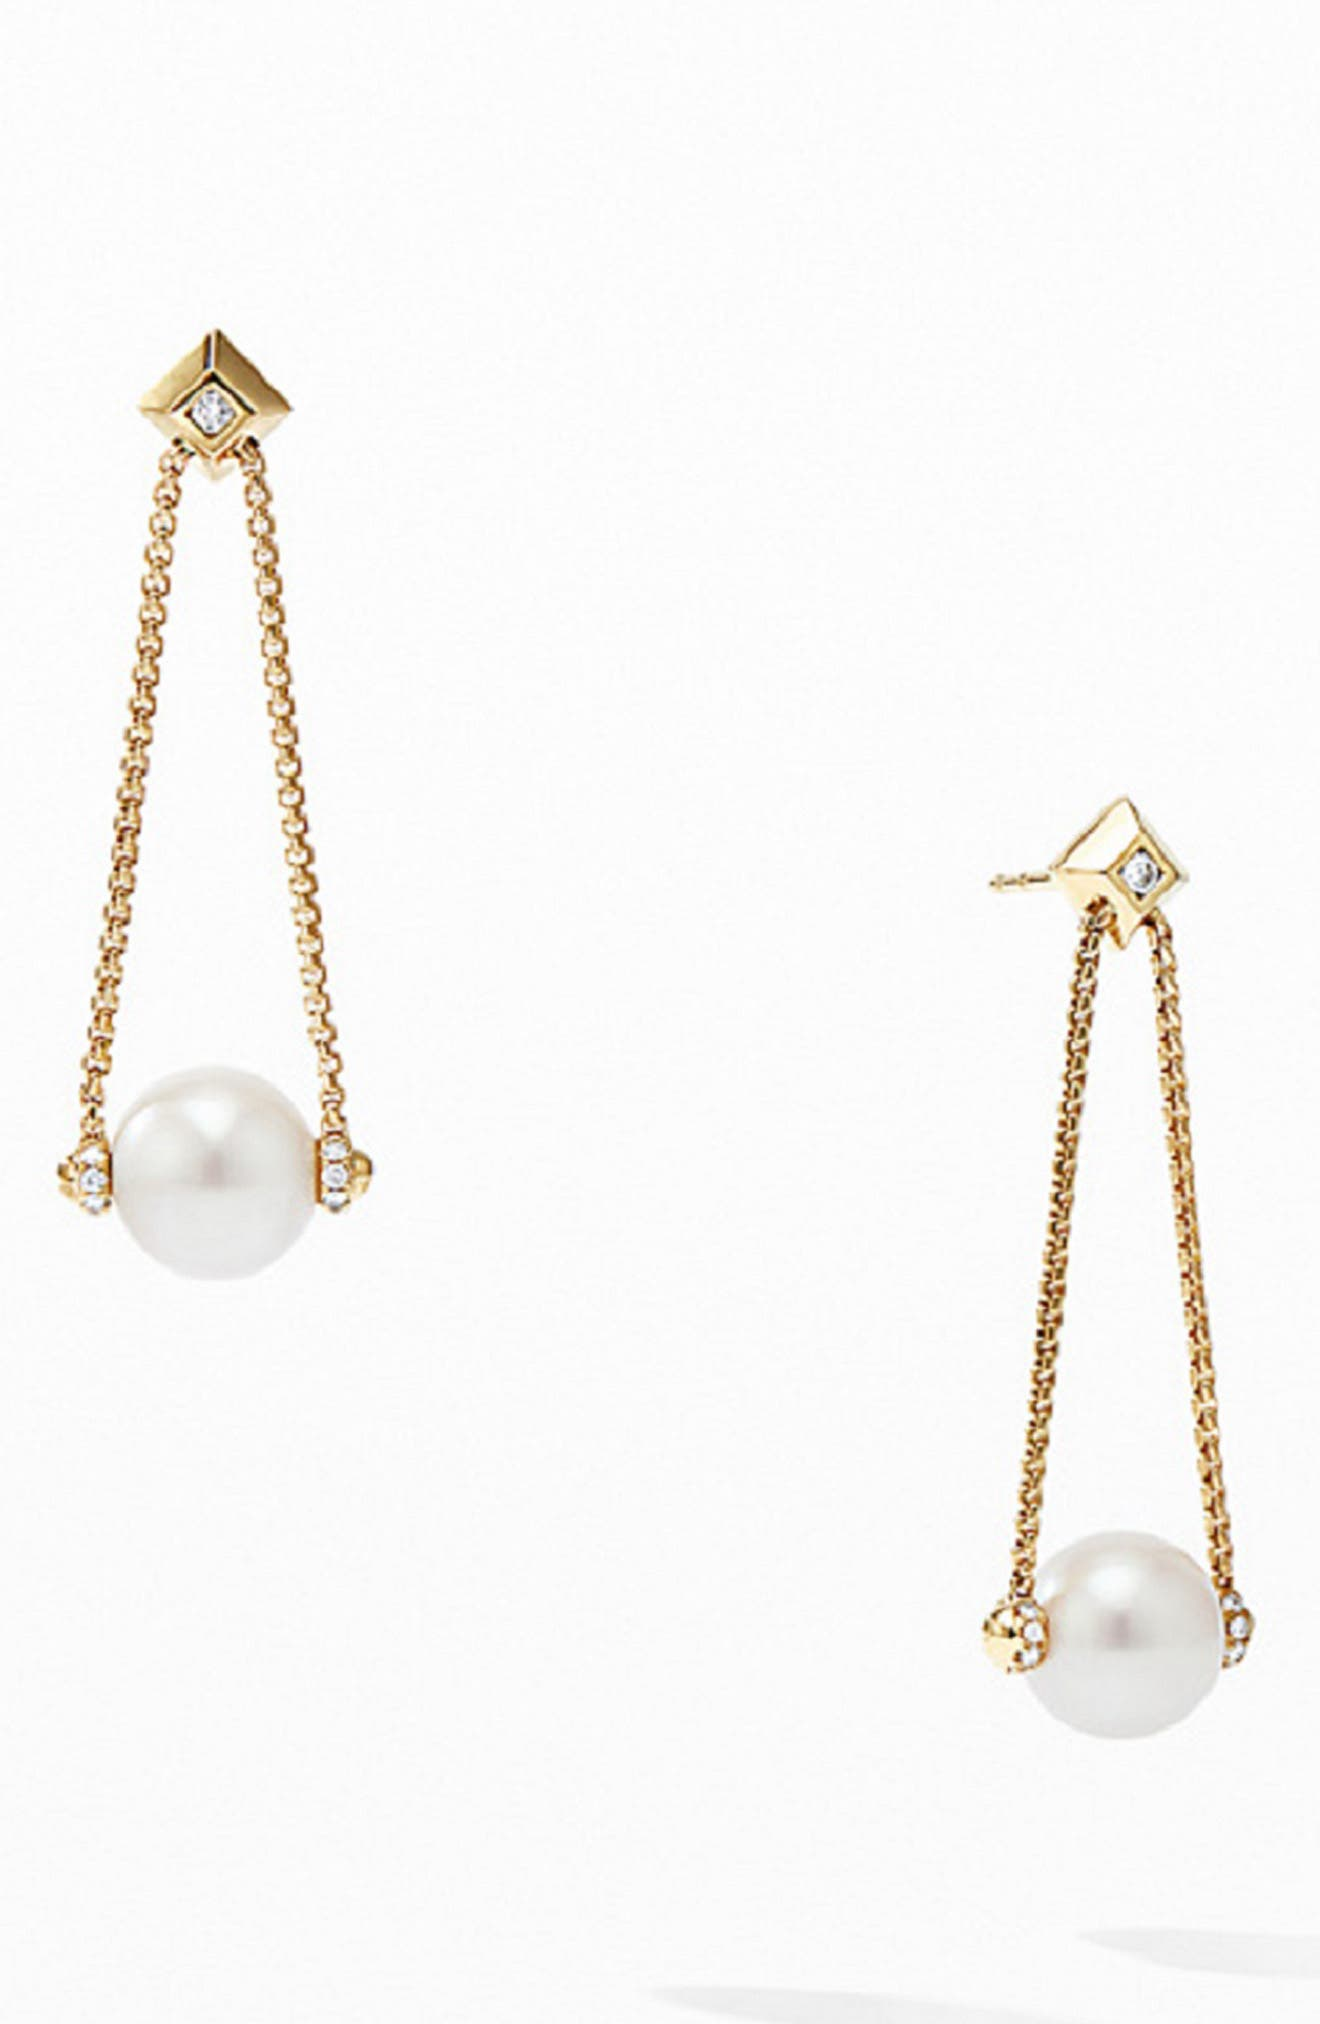 Solari Pearl Drop Earrings with Diamonds in 18K Yellow Gold,                             Main thumbnail 1, color,                             PEARL